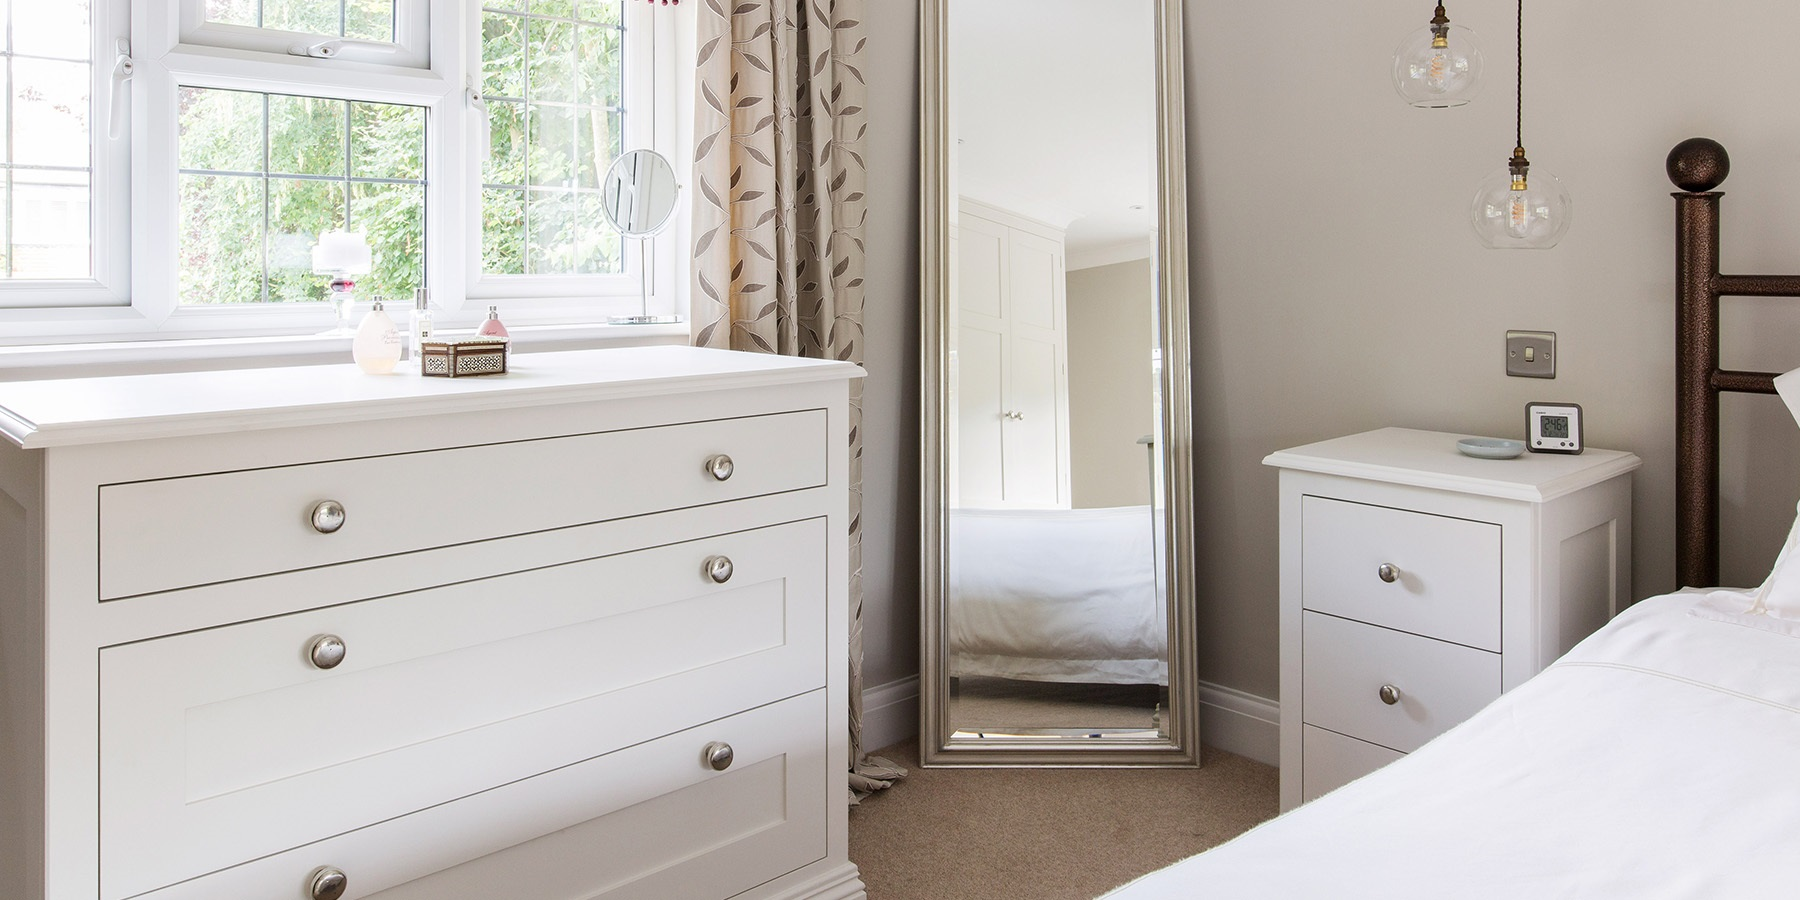 Burlanes Bespoke Bedroom Furniture - Handmade white bedroom furniture and storage solutions.